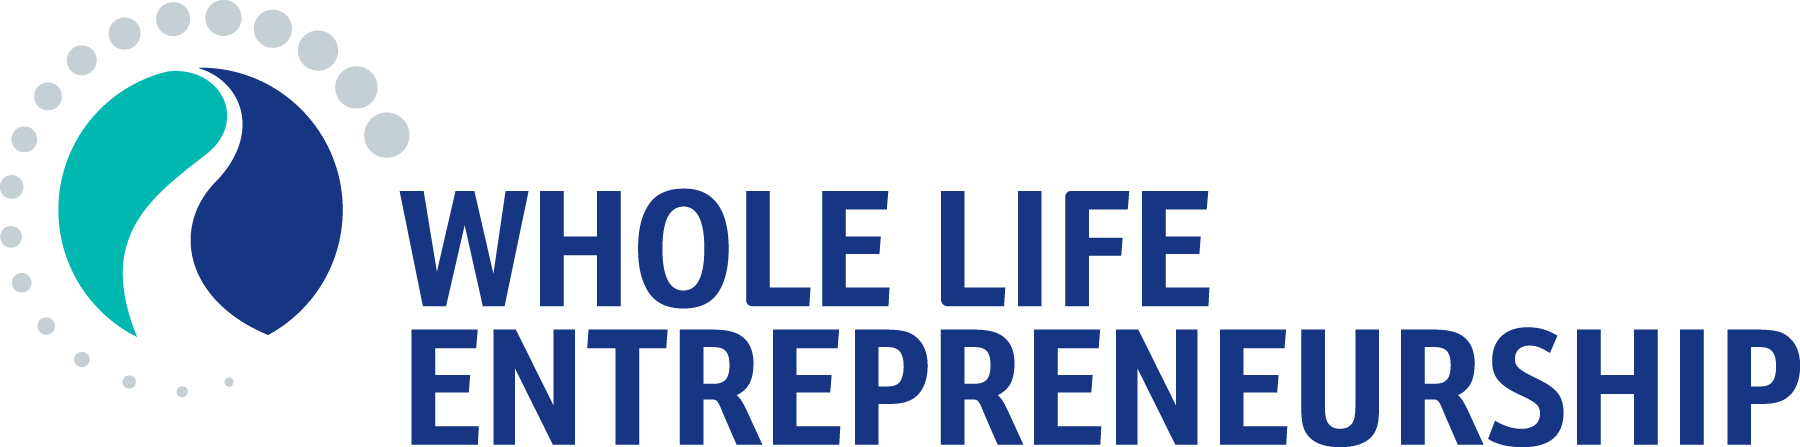 Whole Life Entrepreneurship